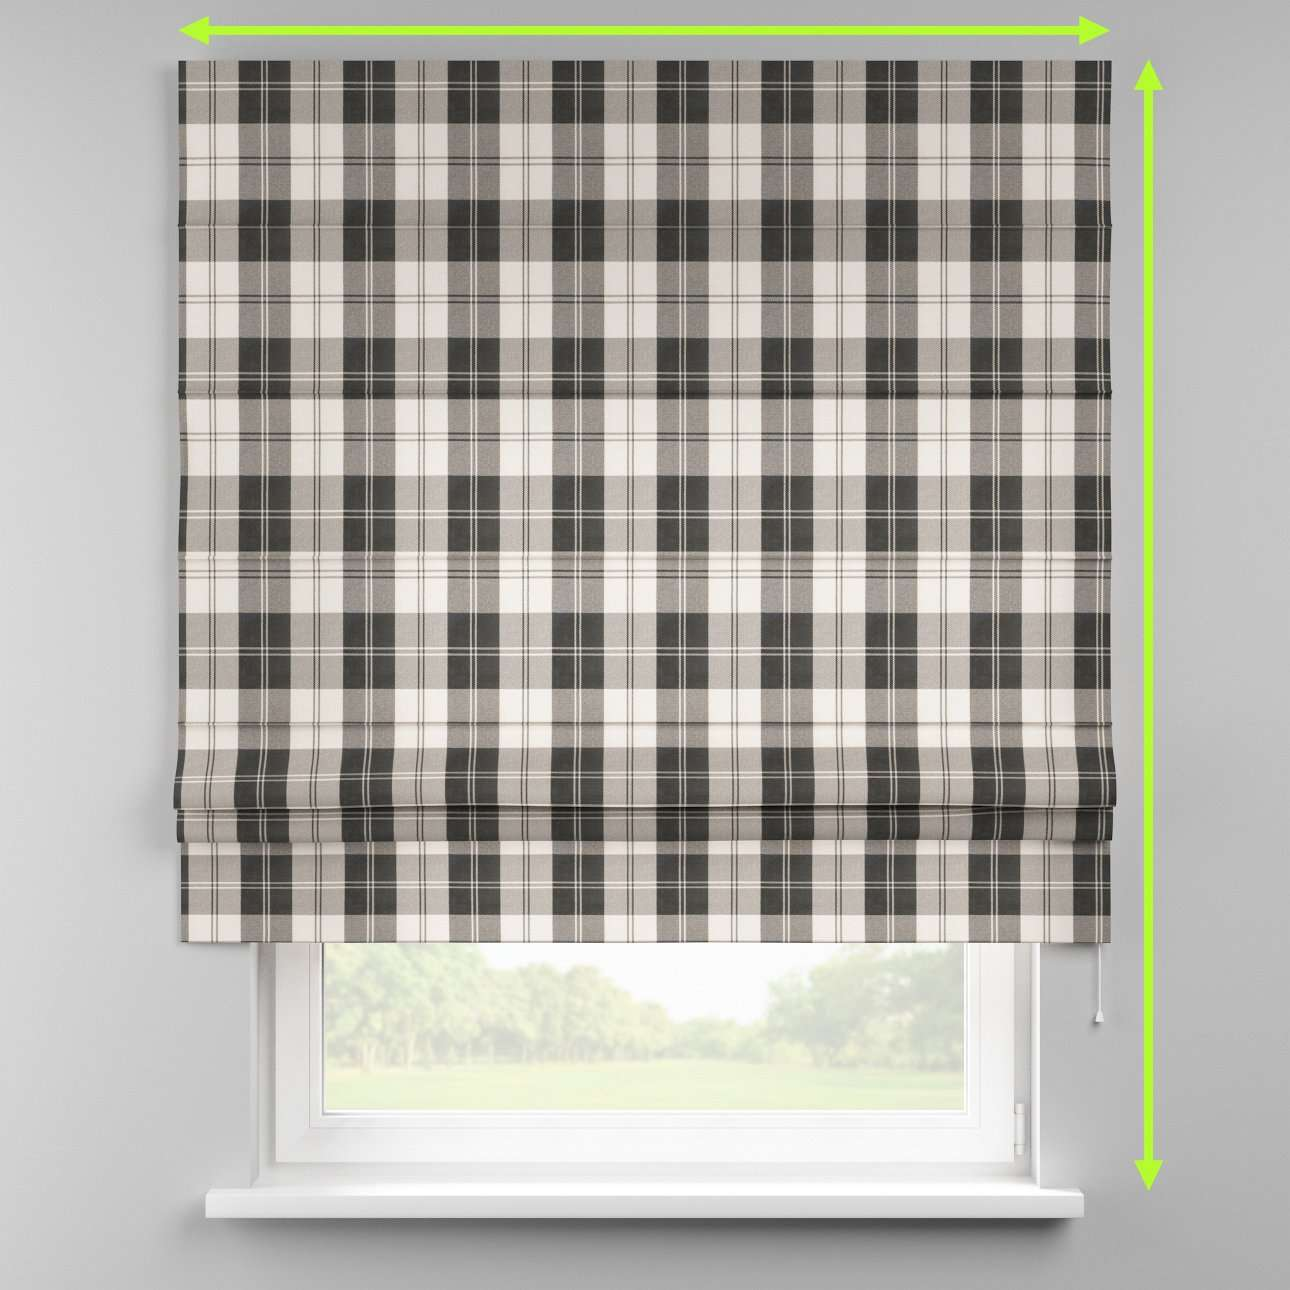 Padva roman blind  in collection Edinburgh , fabric: 115-74